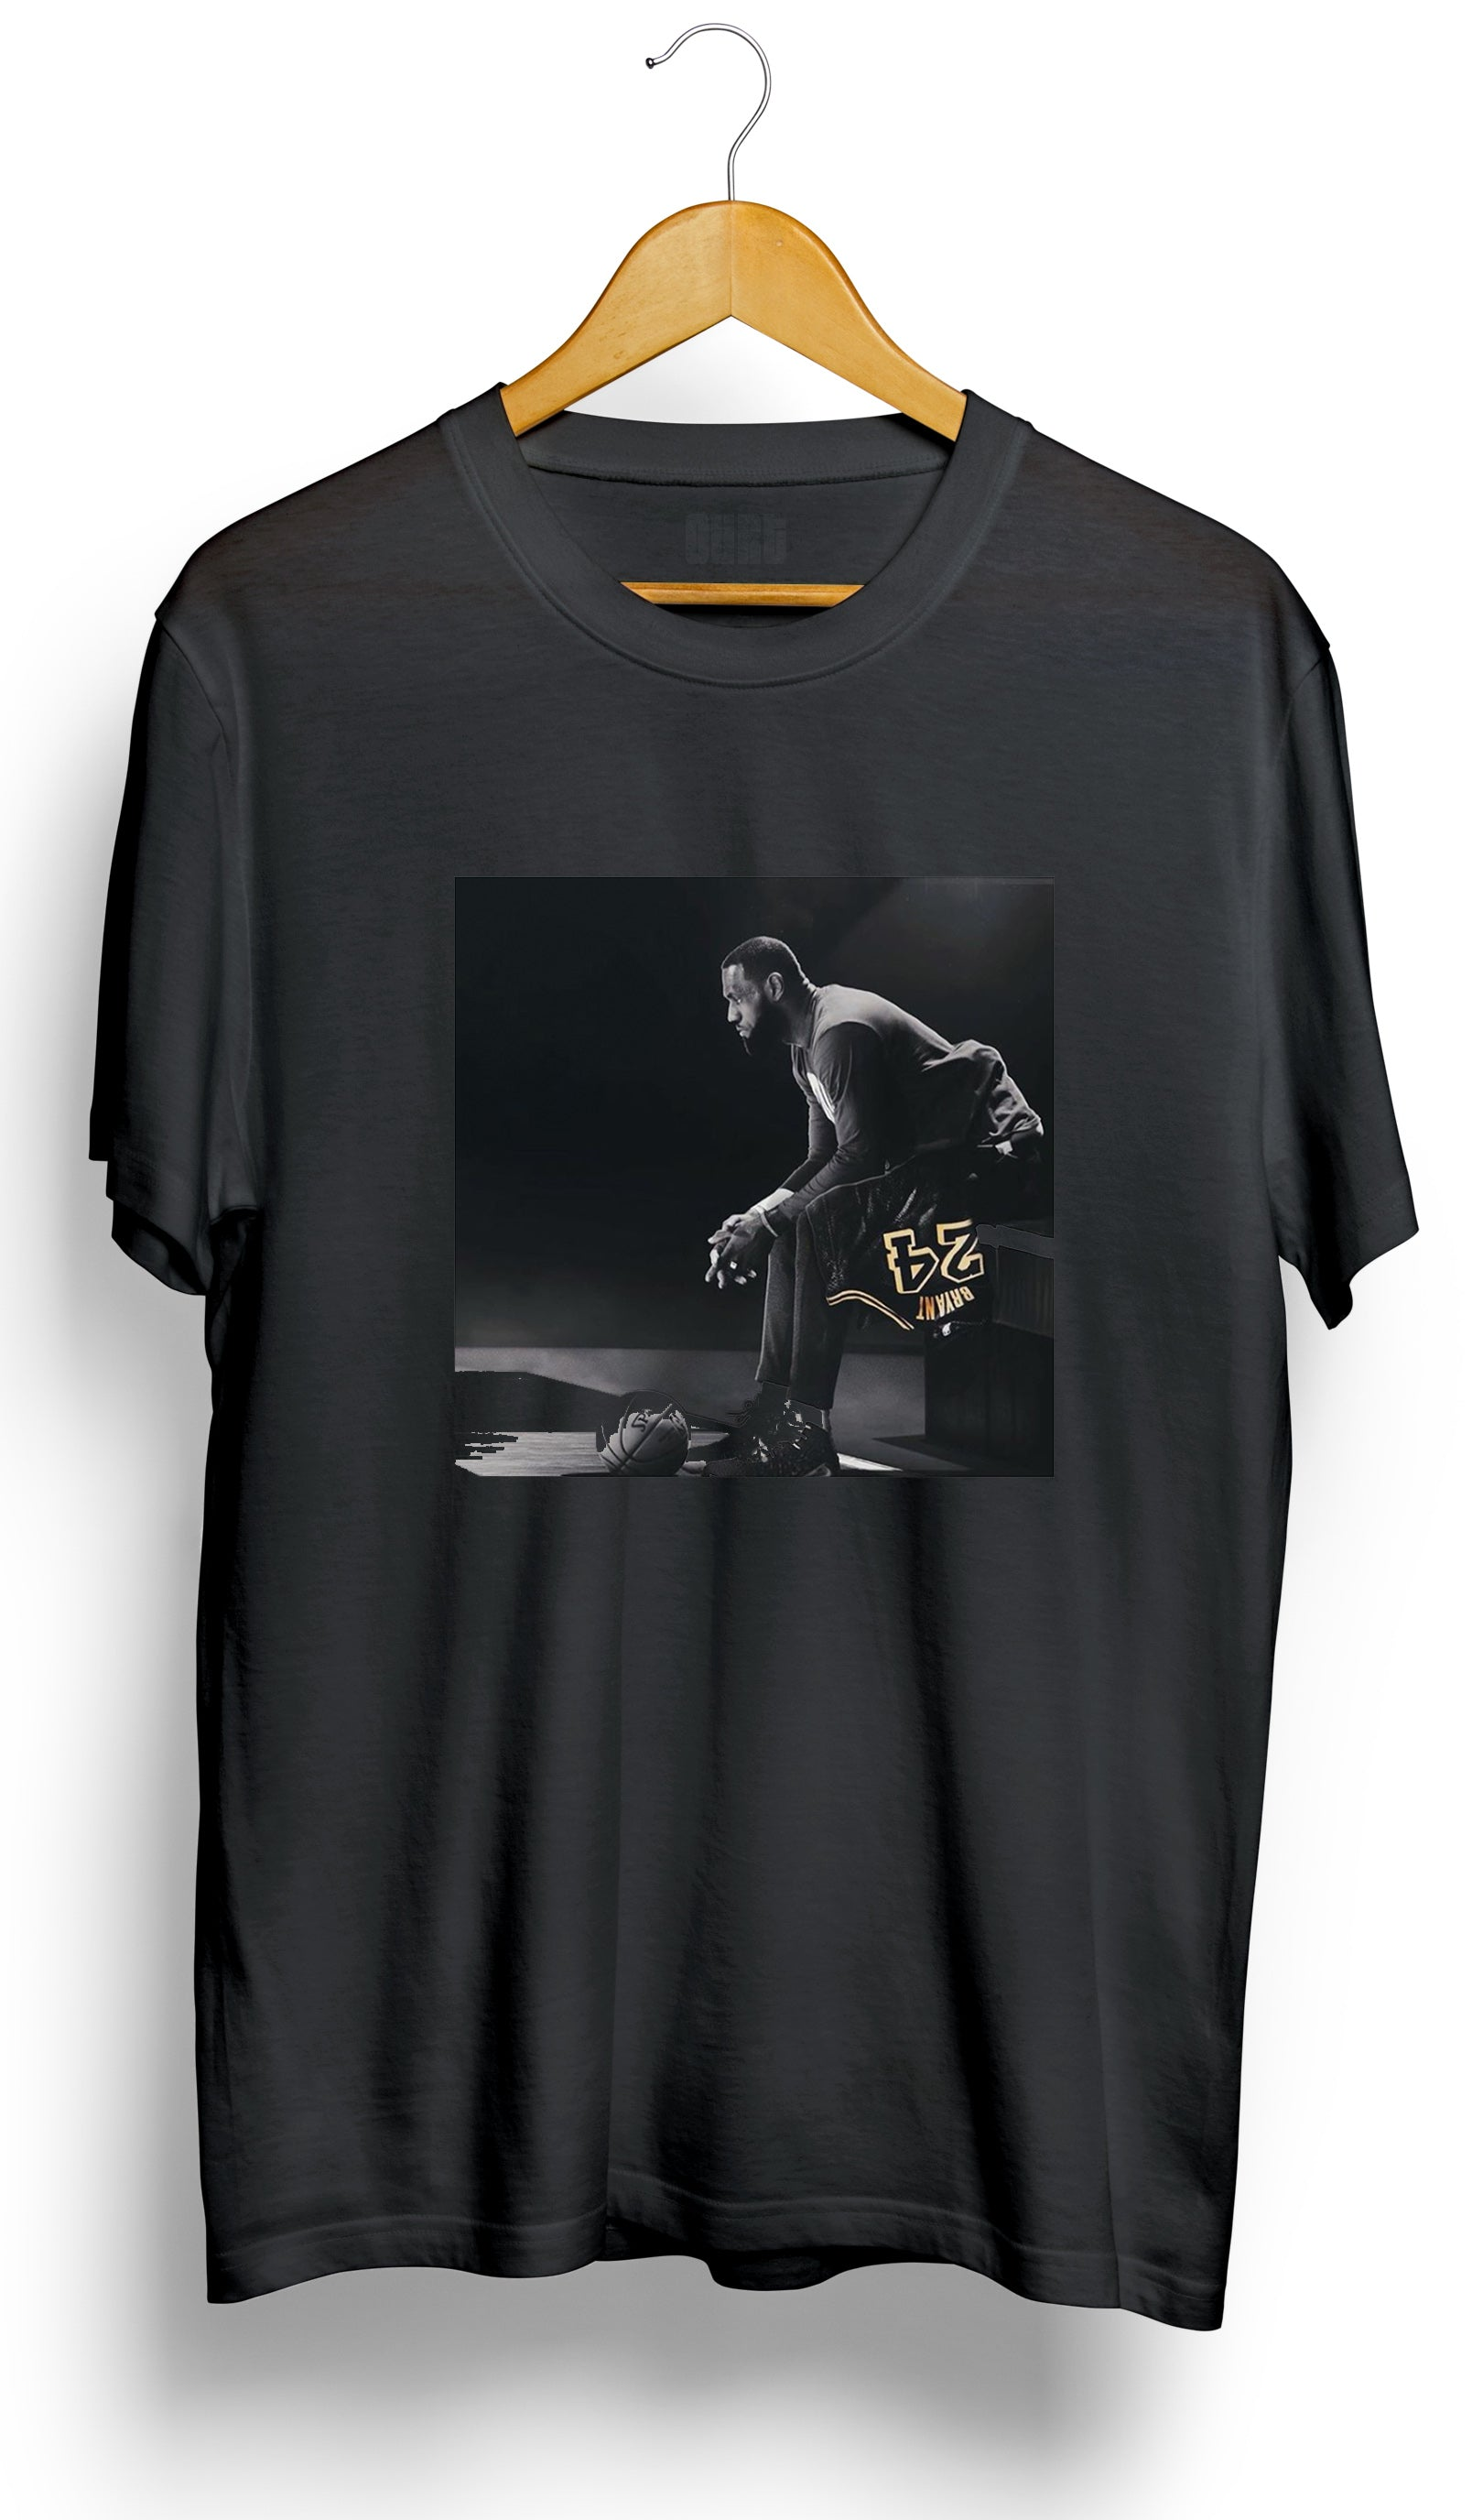 Lebron James | Kobe Bryant | Lakers Championship T-shirt - Ourt